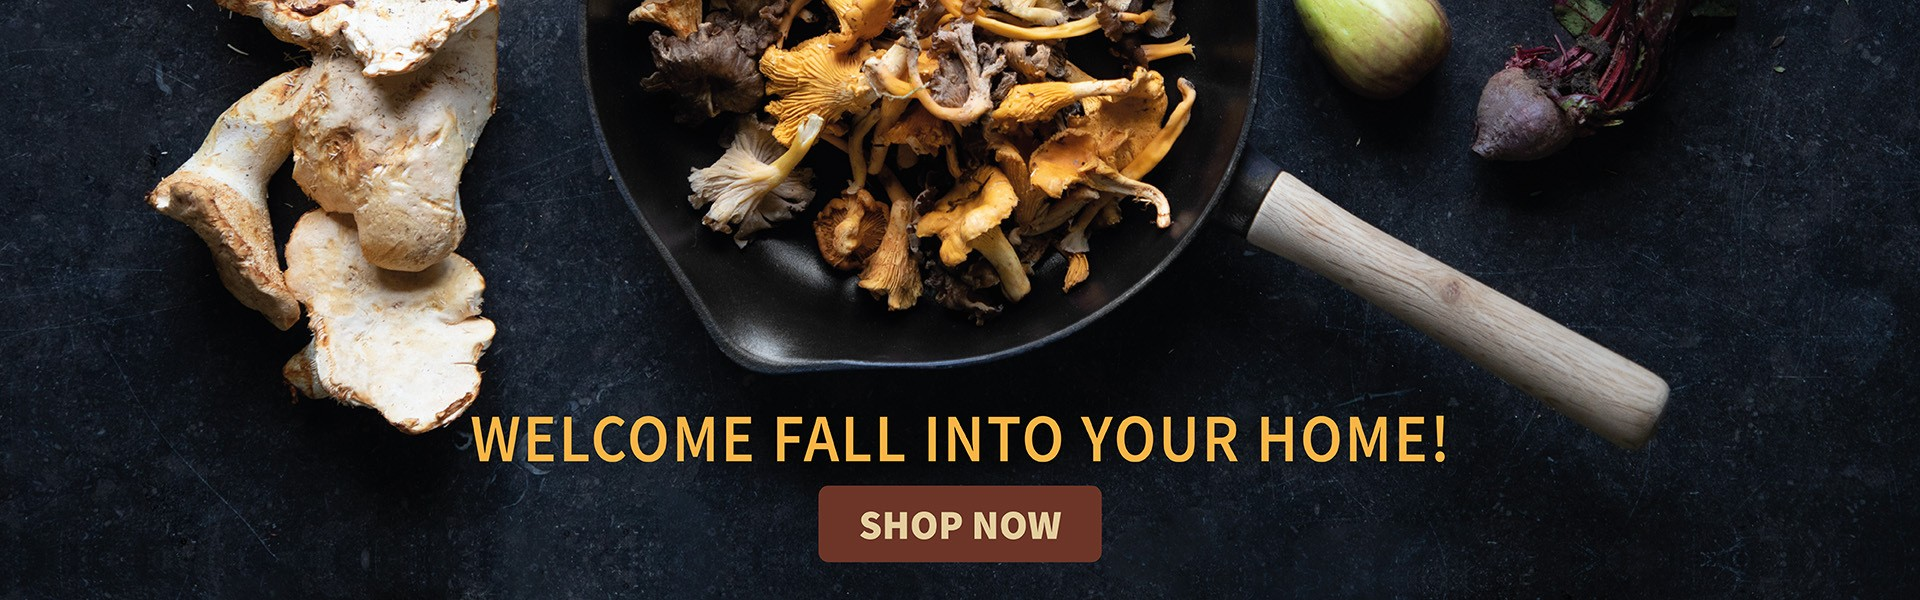 Welcome fall into your home